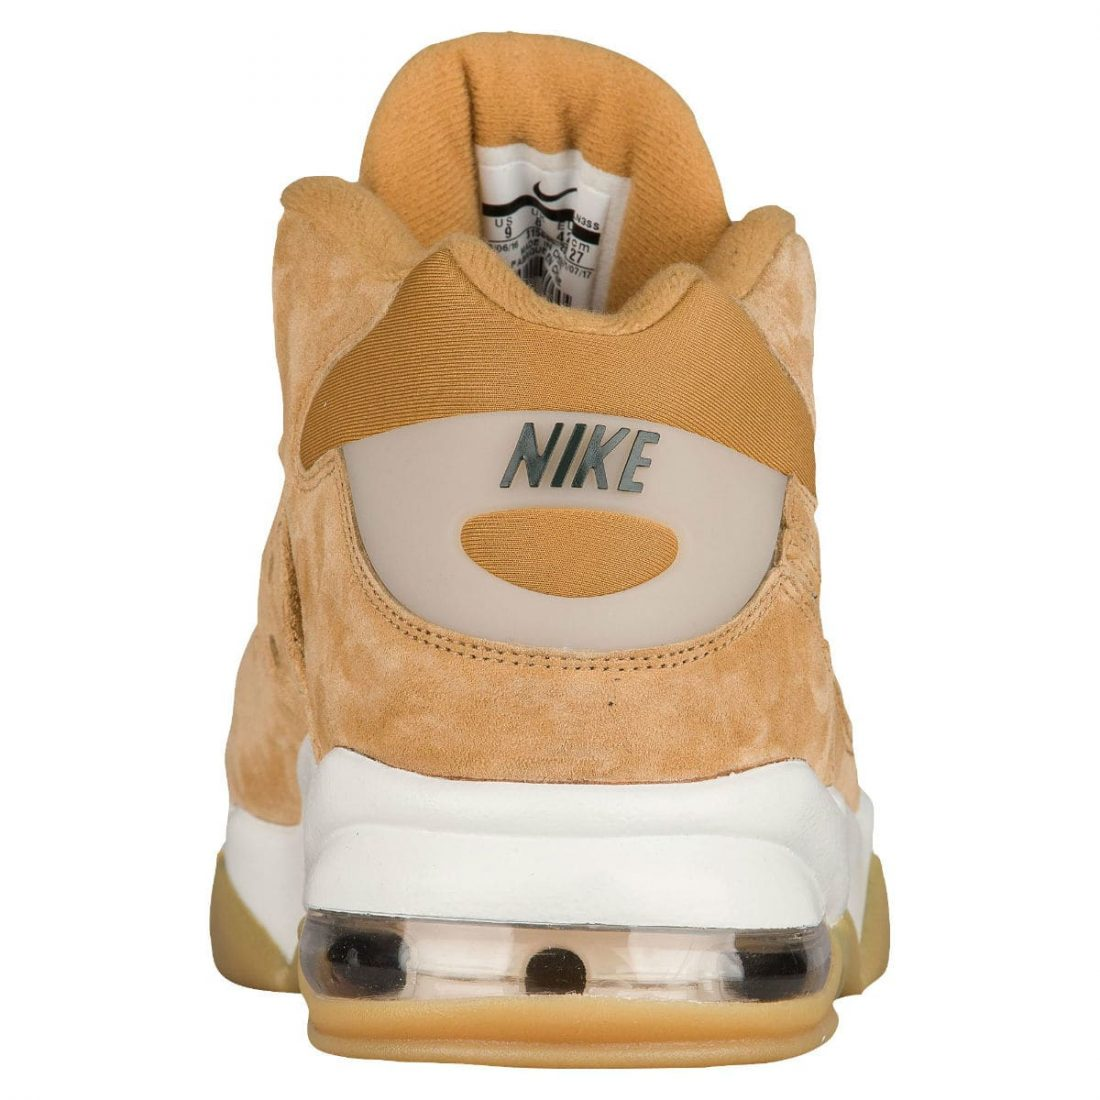 PreviewNike Force Air Site De La Sneaker Max Le Flax rCxBoWde